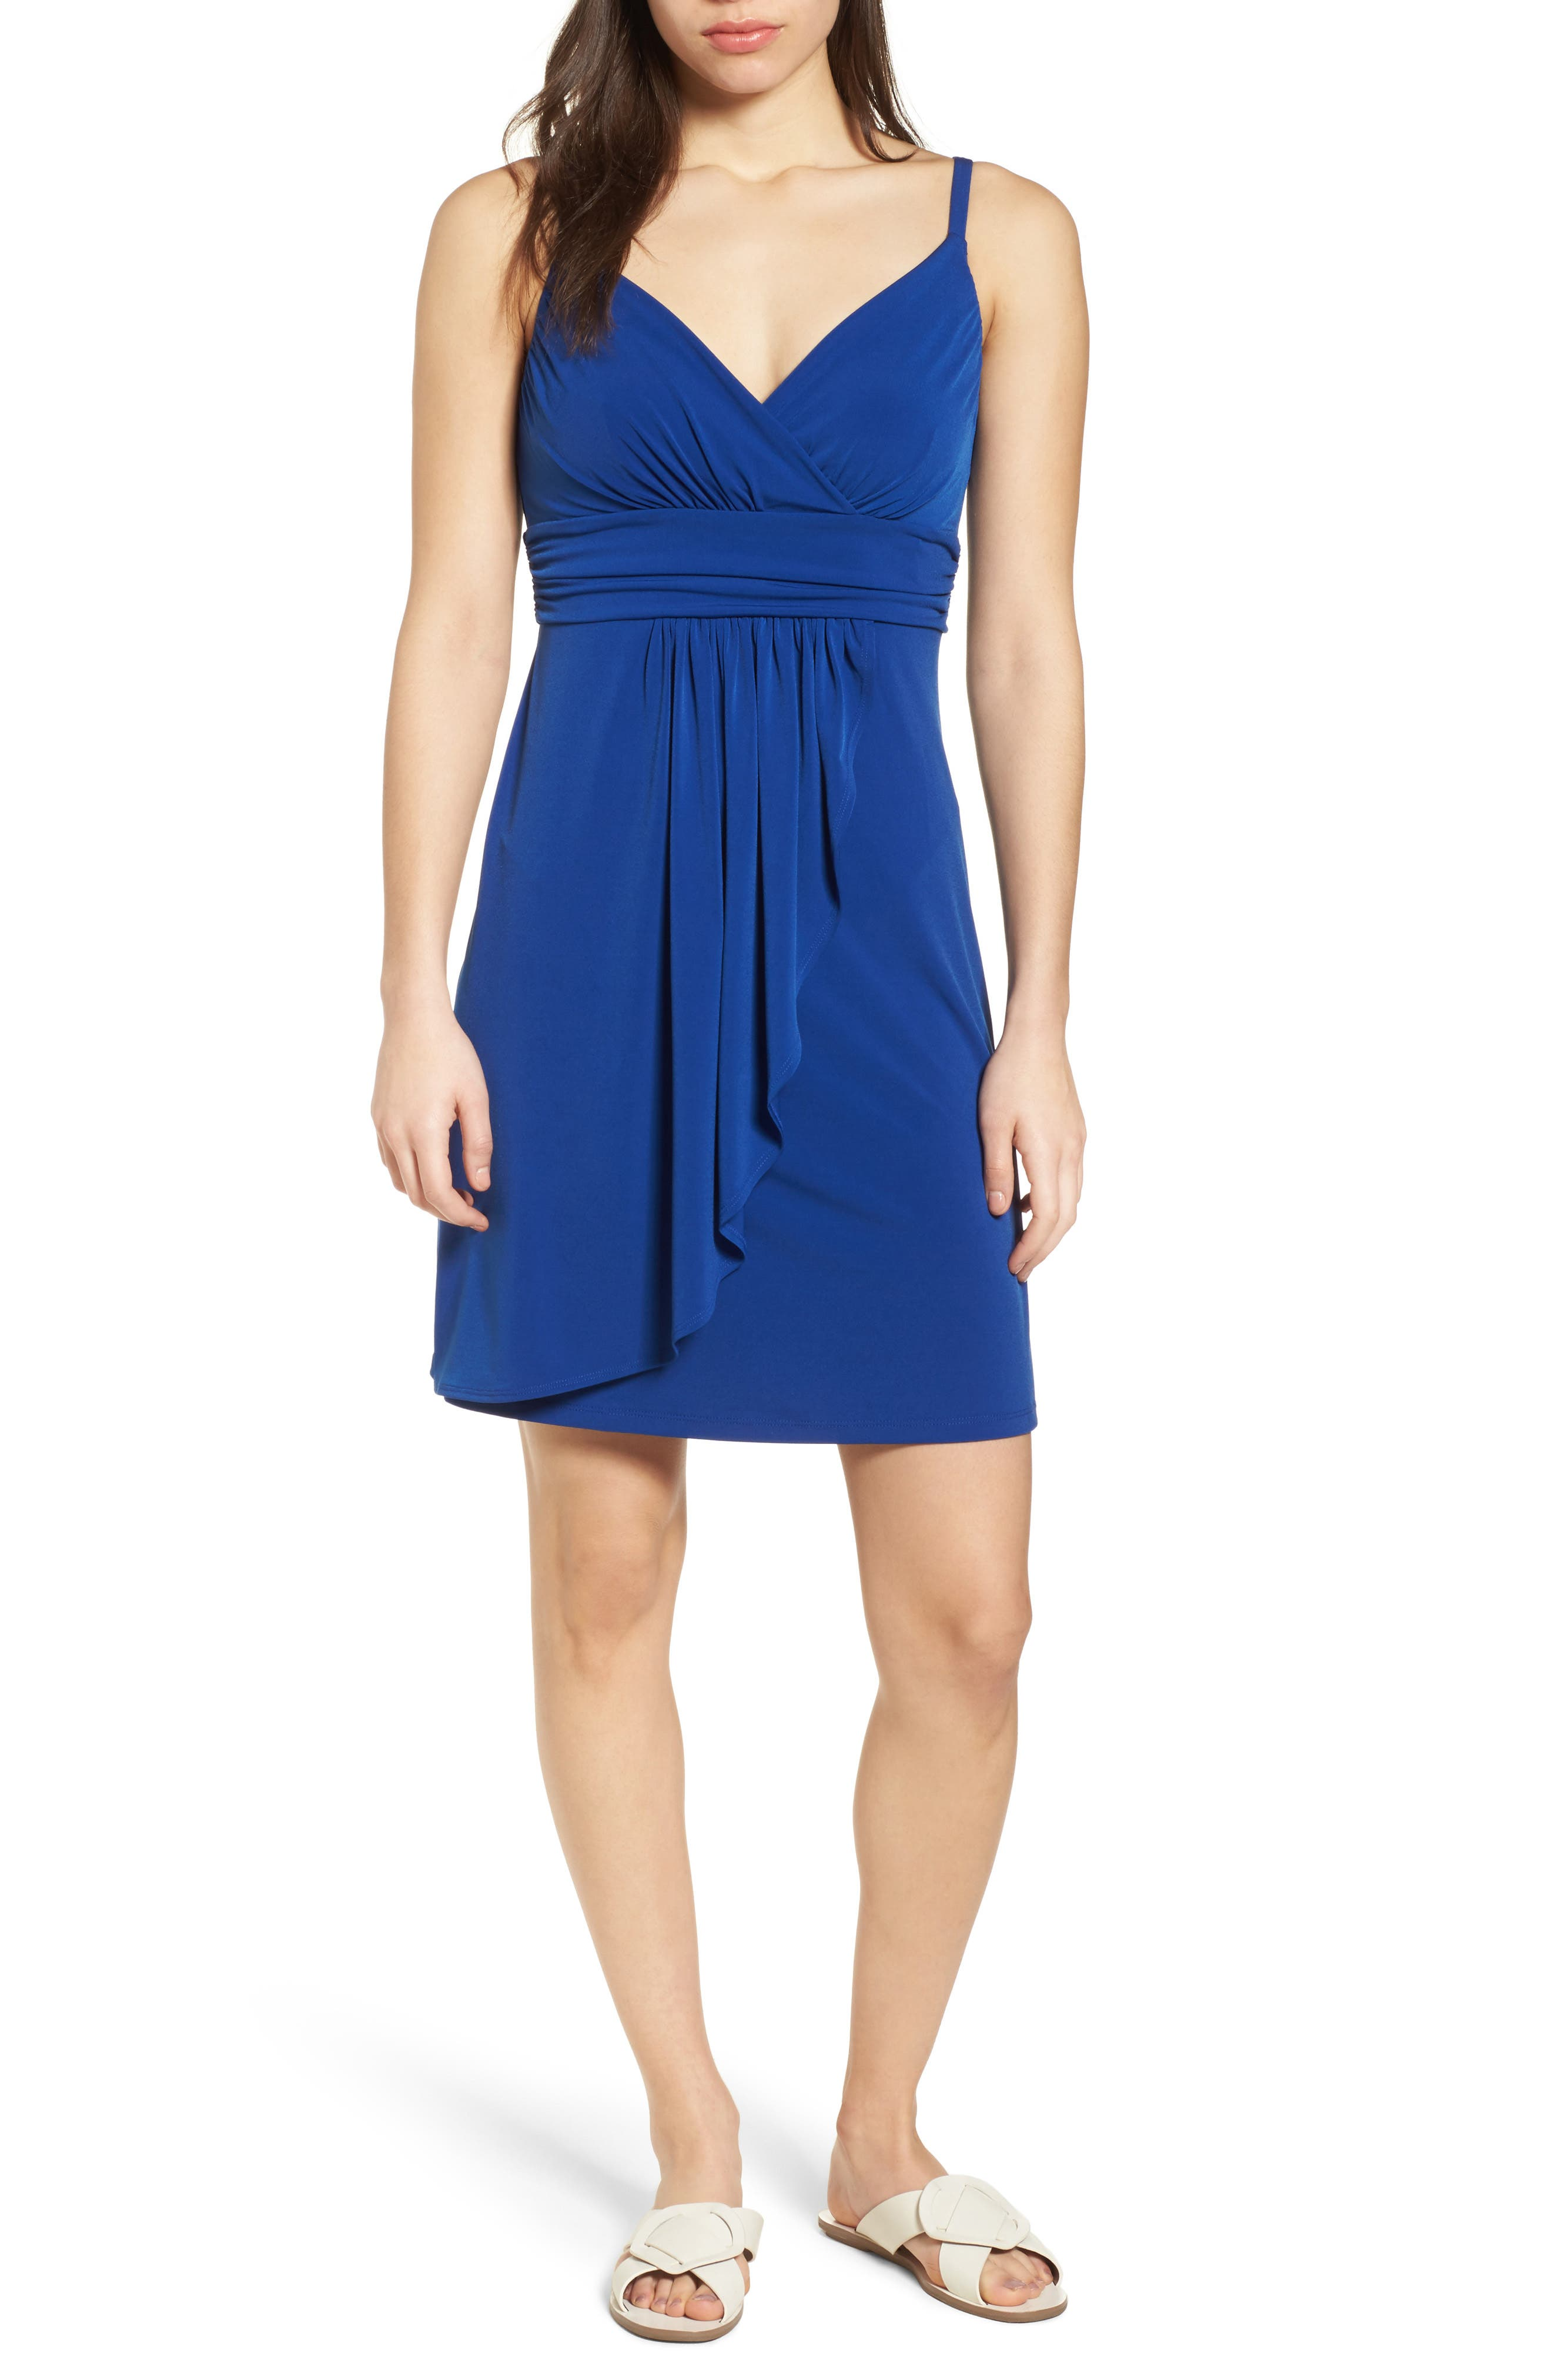 b59be9bf6f2 Women's Tommy Bahama Dresses | Nordstrom